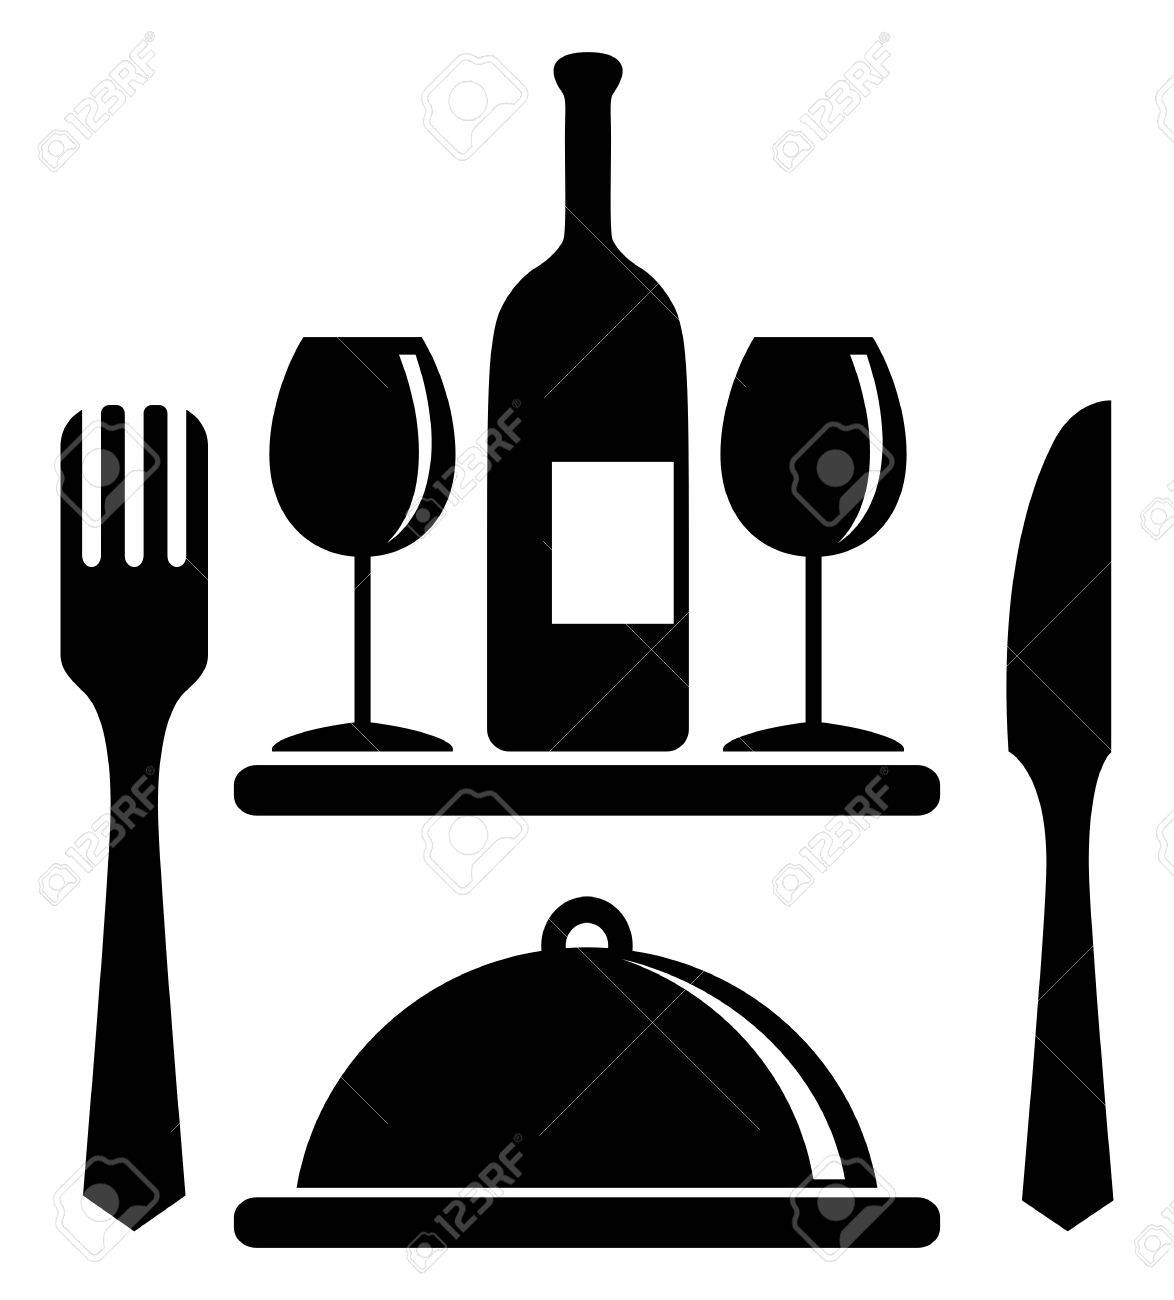 wine bottle glasses serving tray fork knife royalty free rh 123rf com free vector wine clipart free vector wine labels